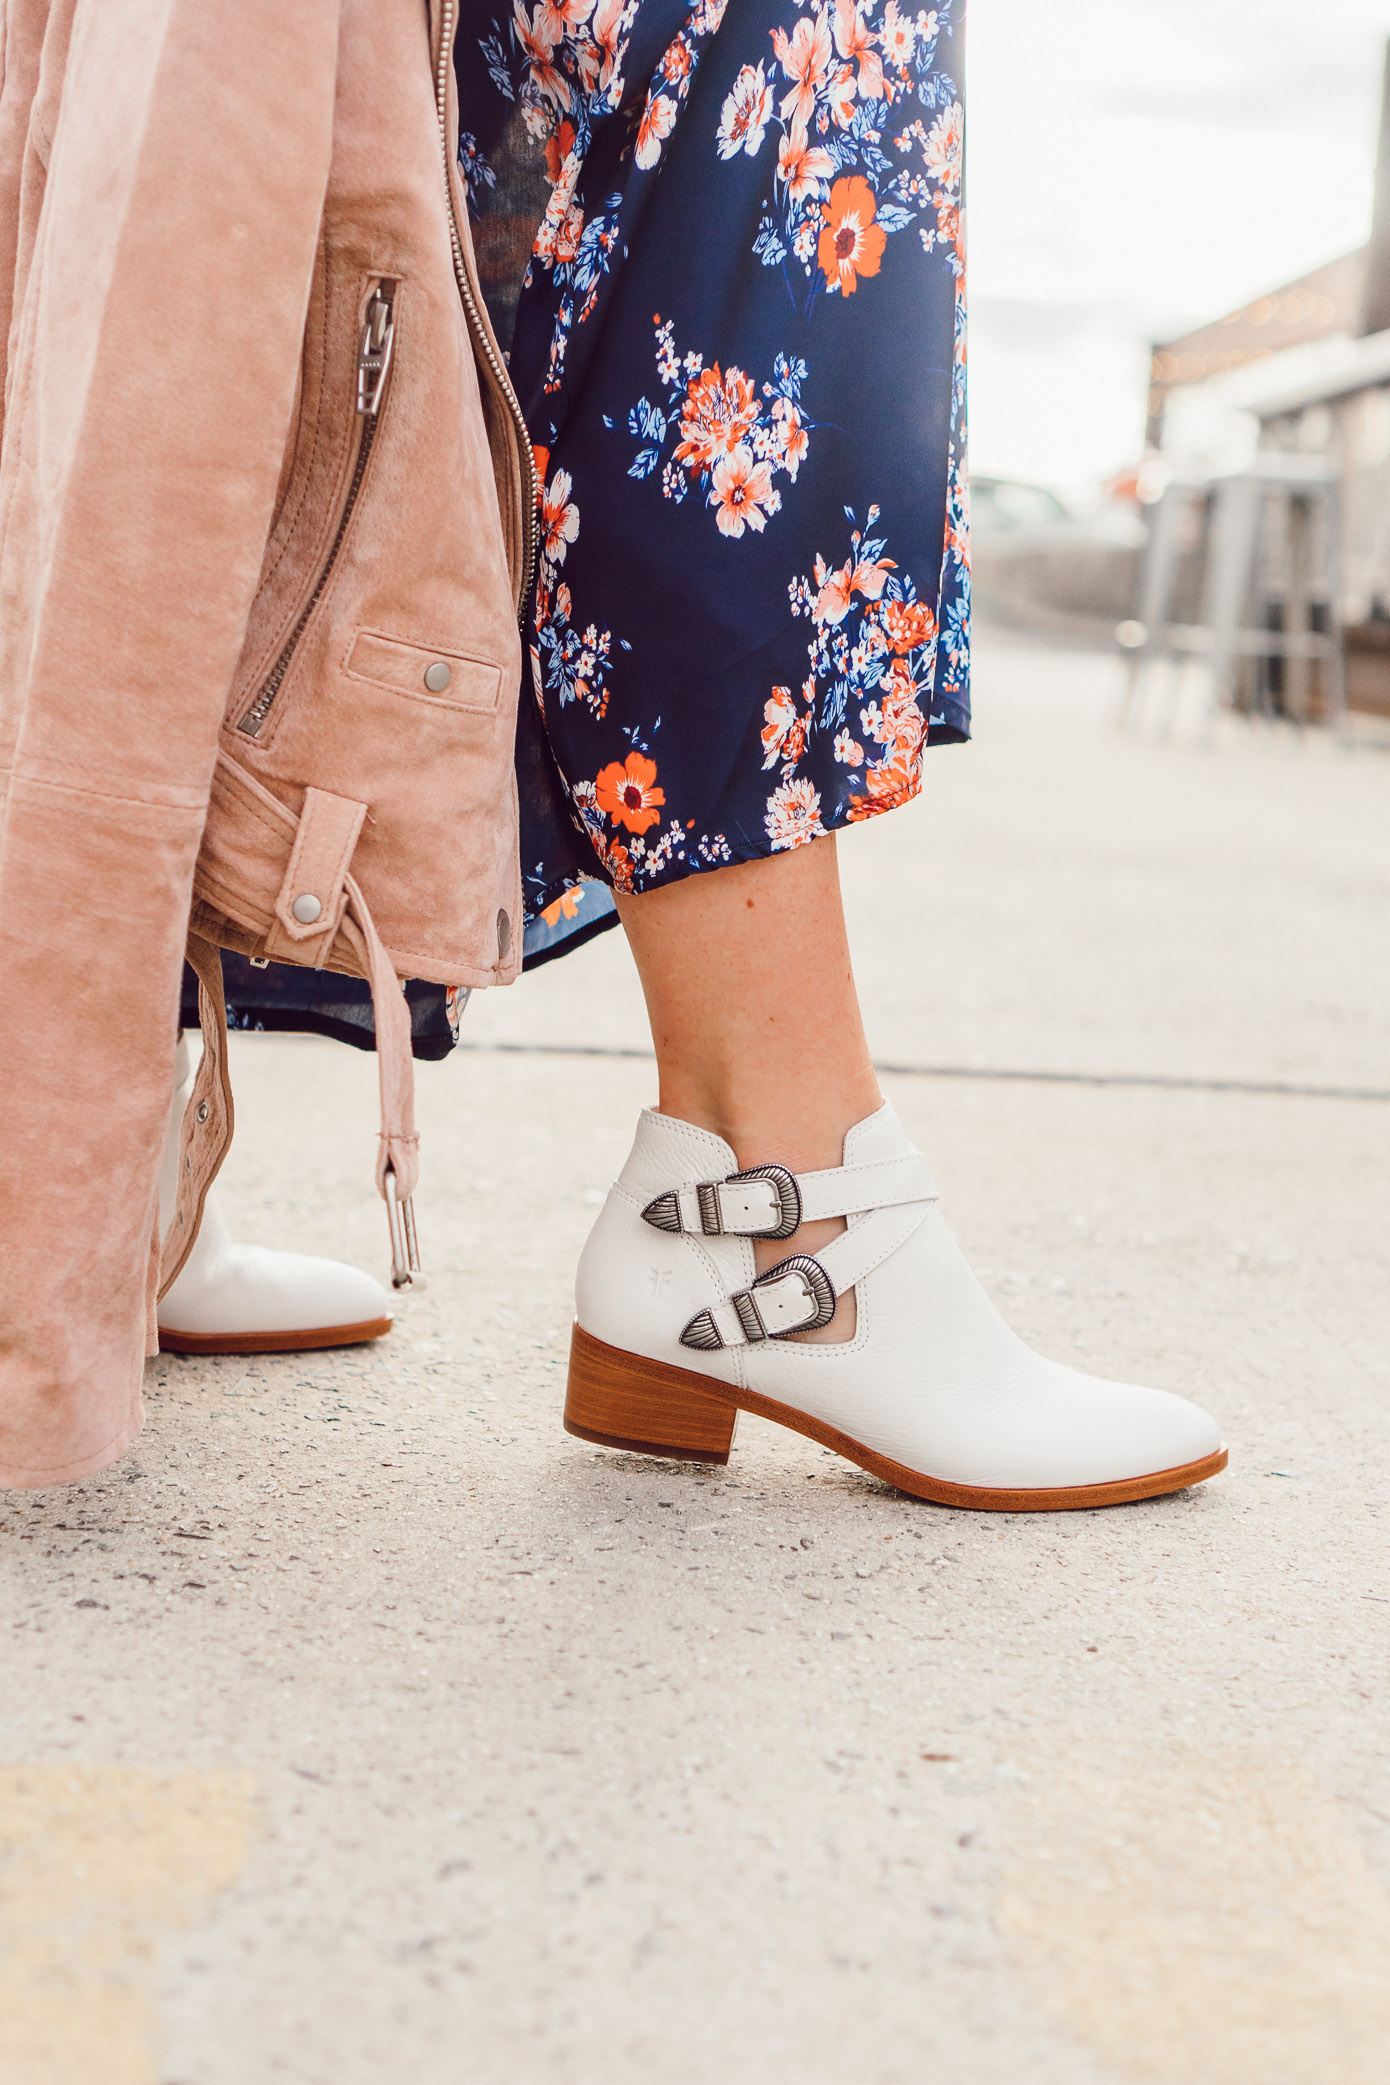 White Booties for Fall, Blush Suede Moto Jacket | 2018 Fall Jackets featured on Louella Reese Life & Style Blog